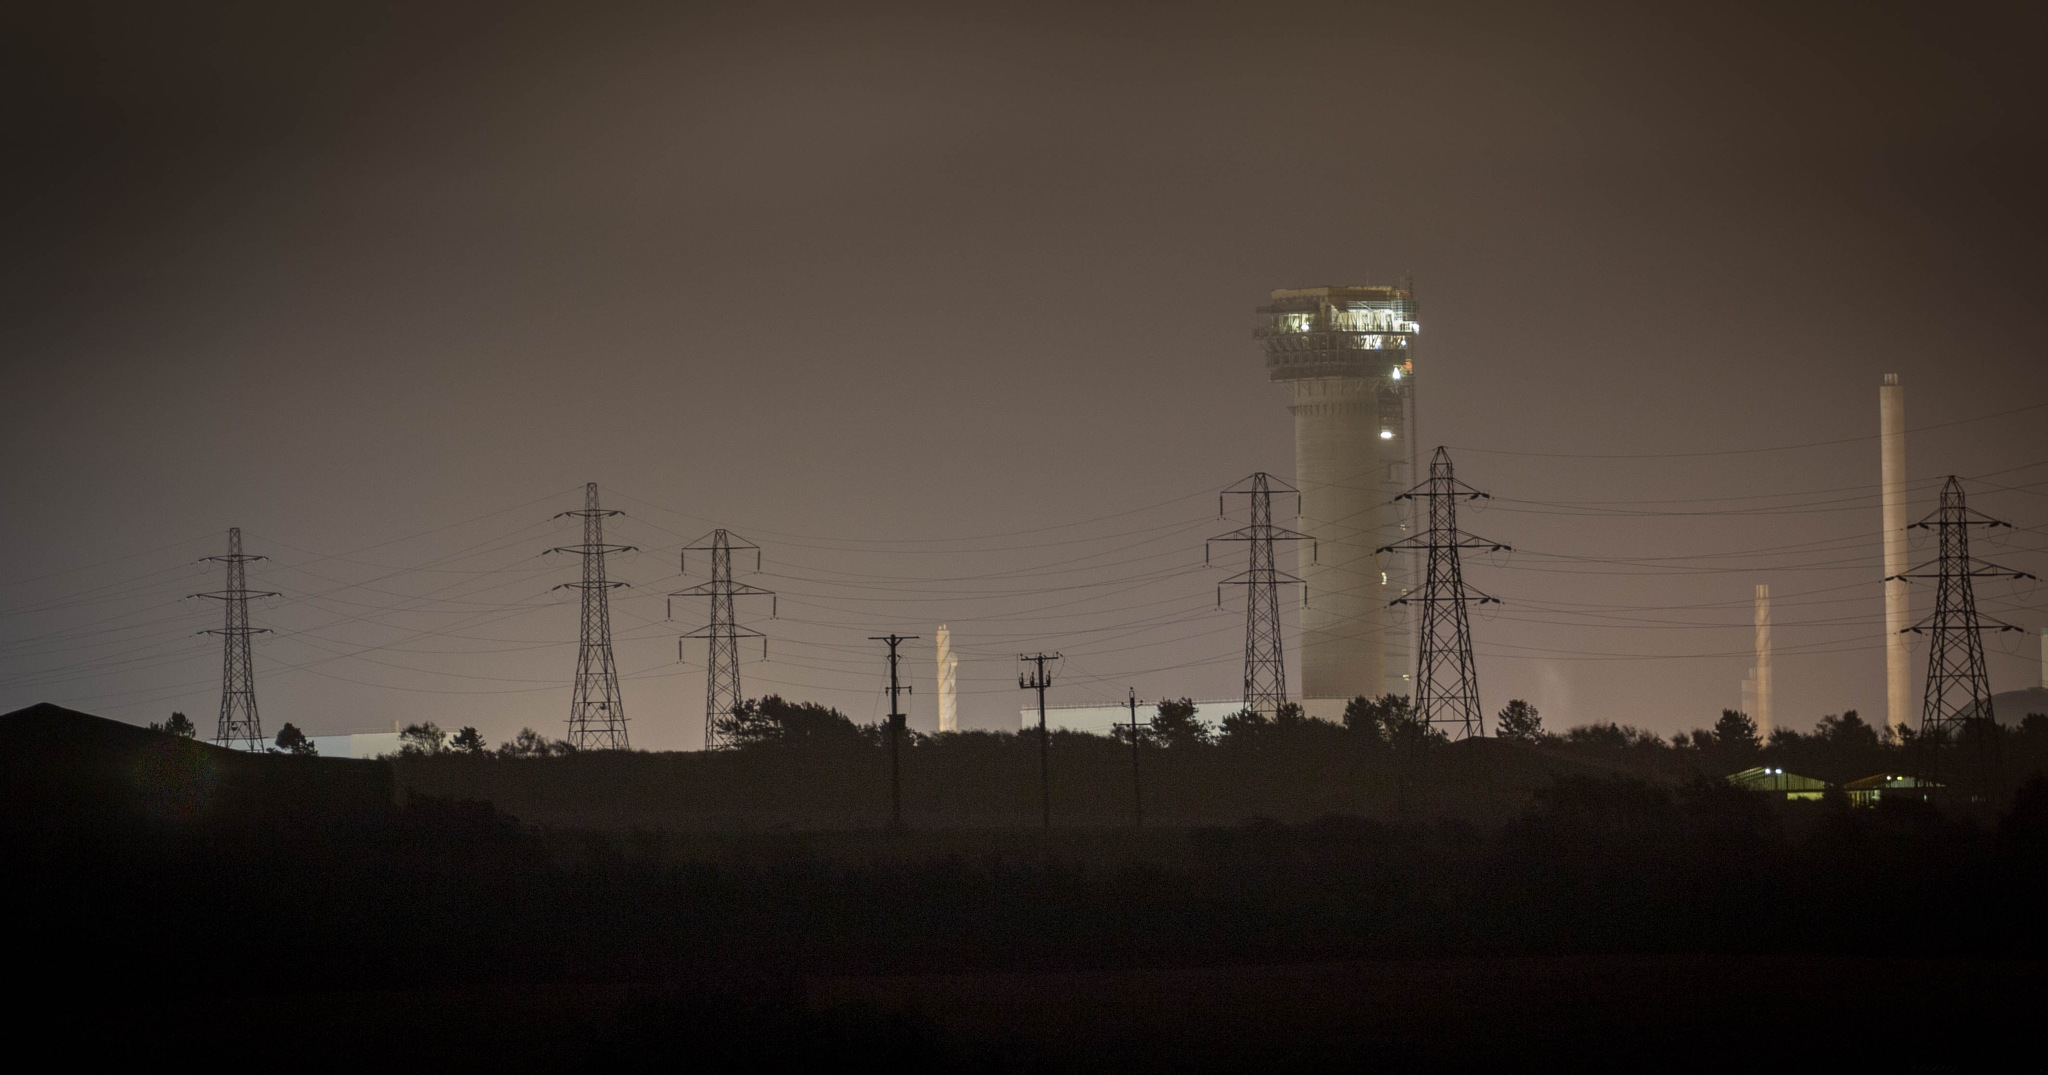 Sellafield at Night by Chris Wood